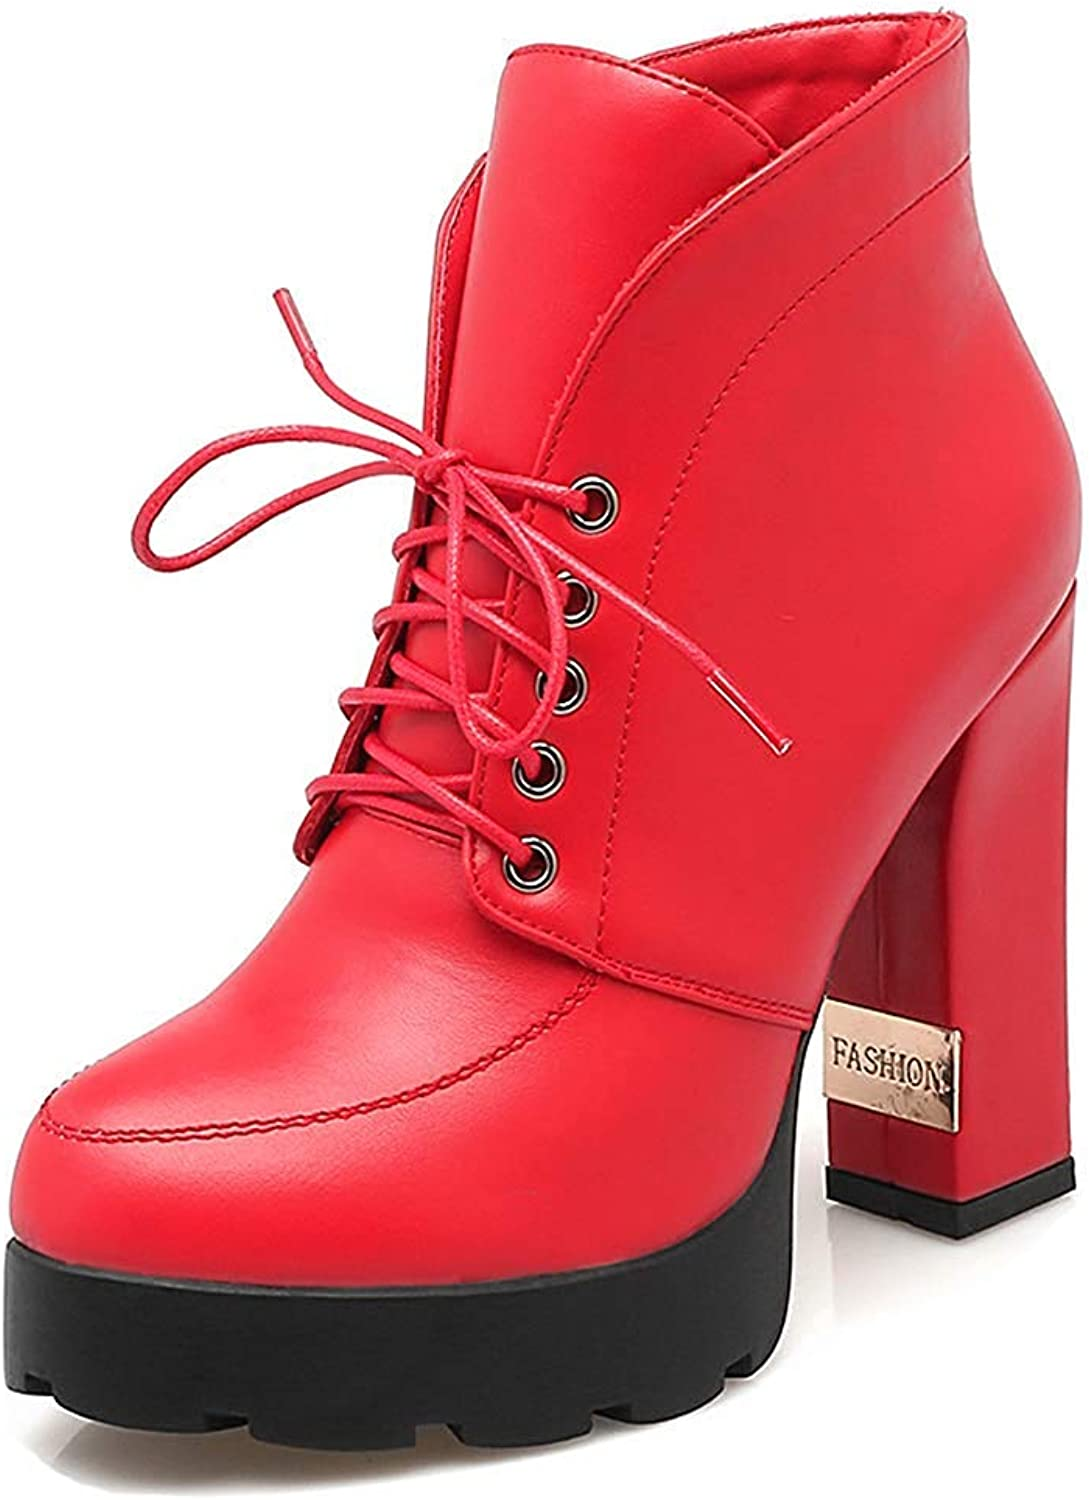 Women's Chunky High Heeled Short Boots - Elegant Dressy Lace Up - Round Toe Platform Ankle Booties